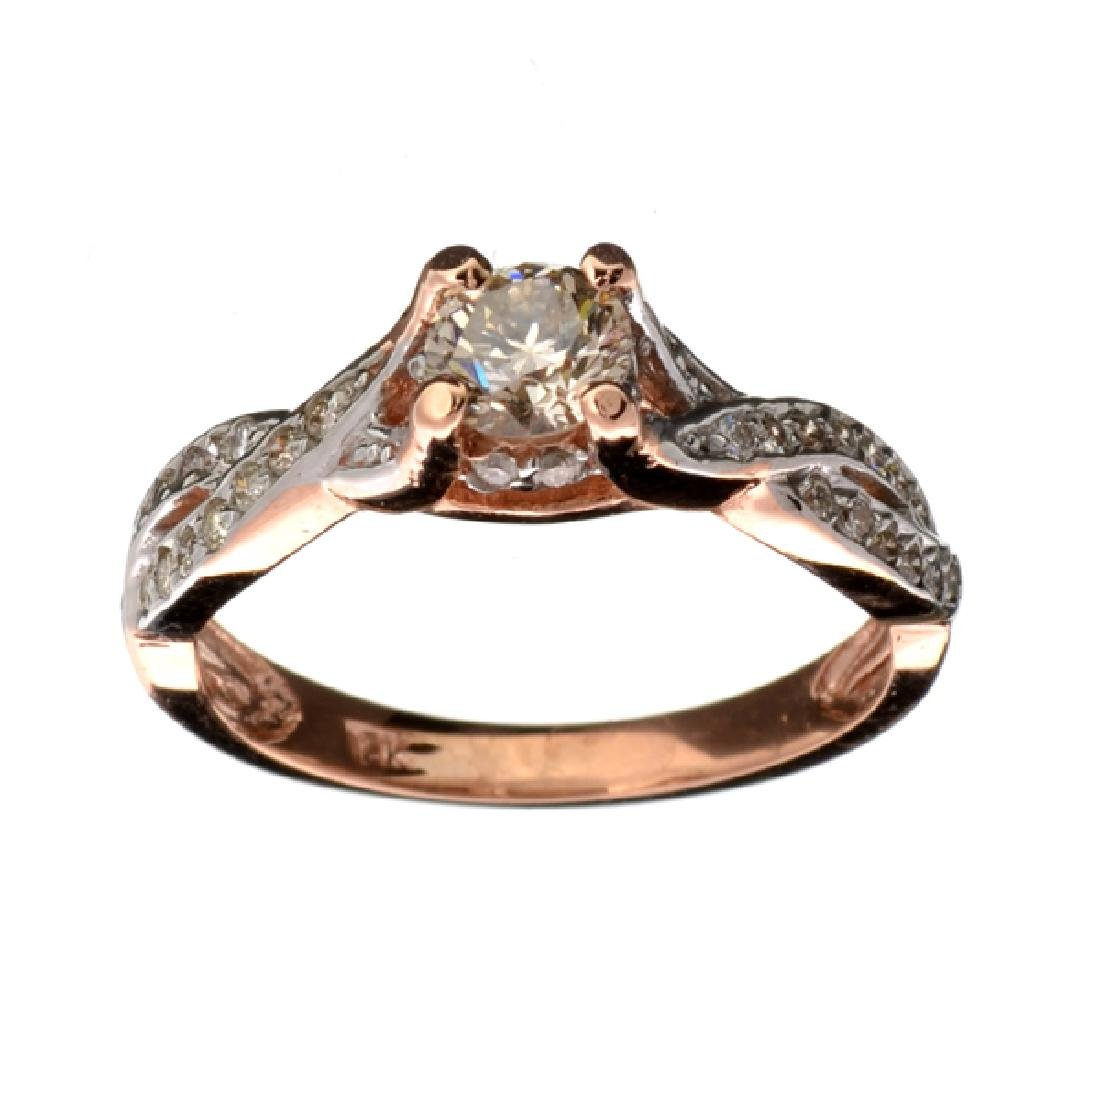 APP: 6.6k Fine Jewelry 14 kt. Rose Gold, 0.68CT Round